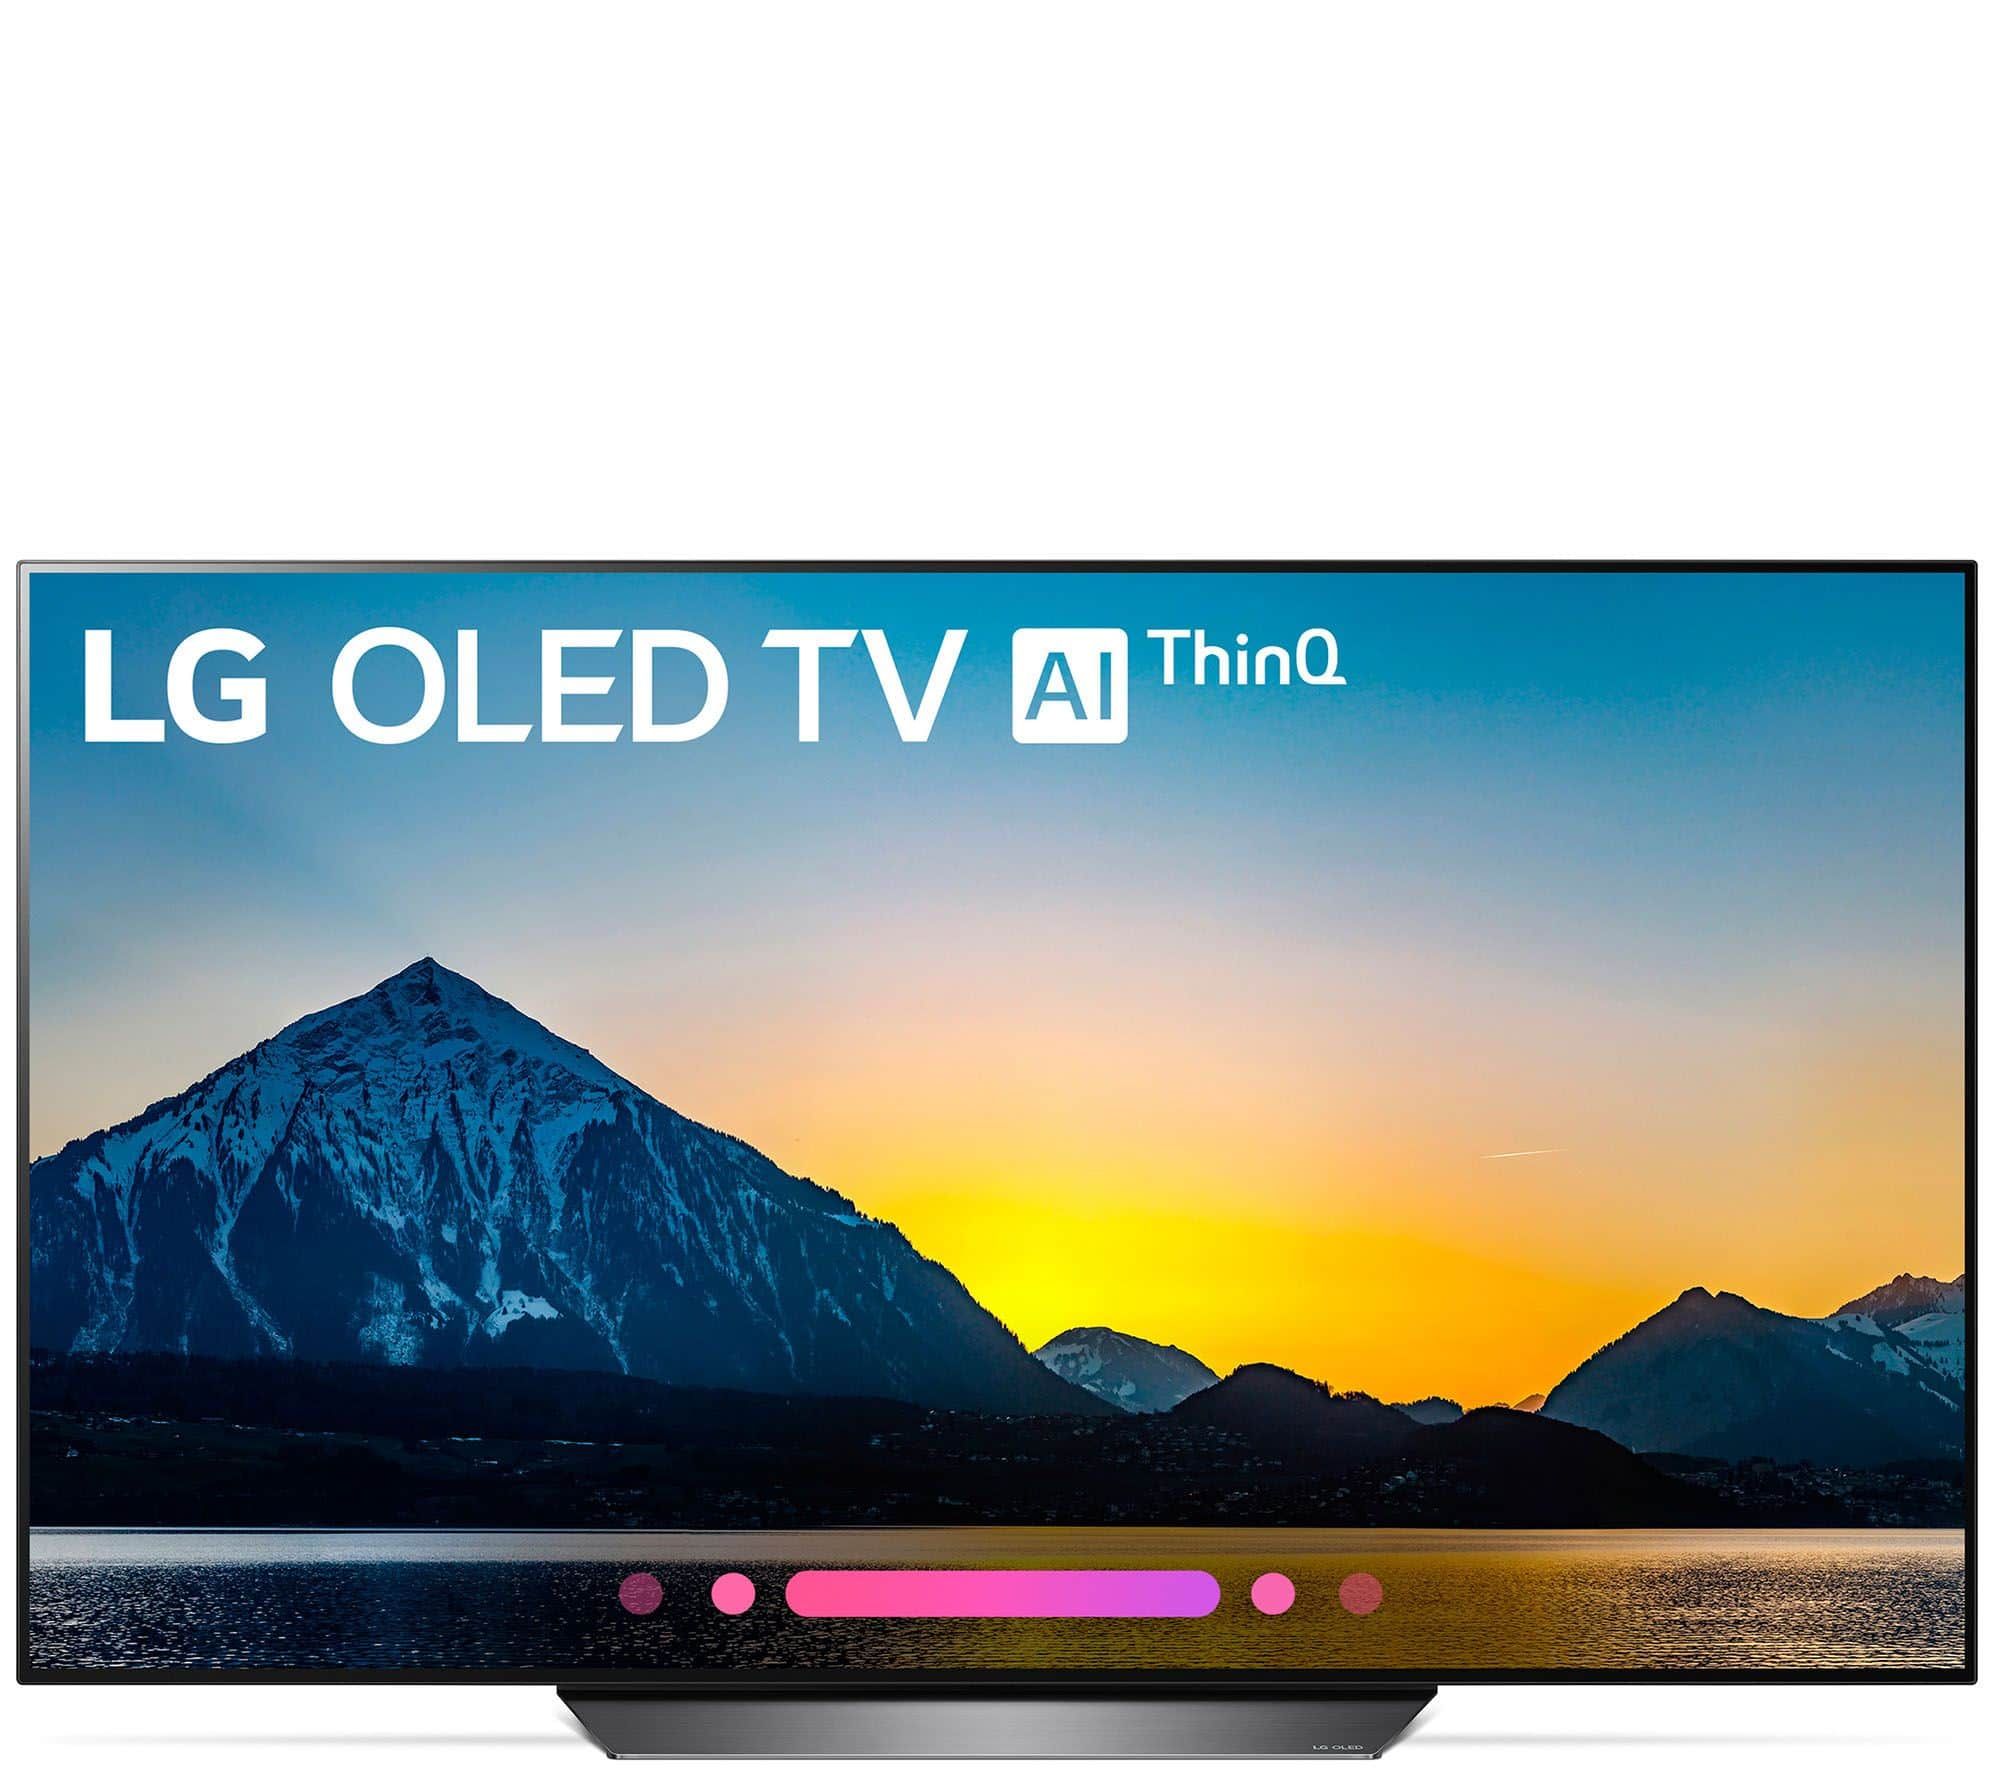 55 Lg 55b8pua 4k Uhd Hdr Oled Smart Tv W Ai Thinq Slickdealsnet